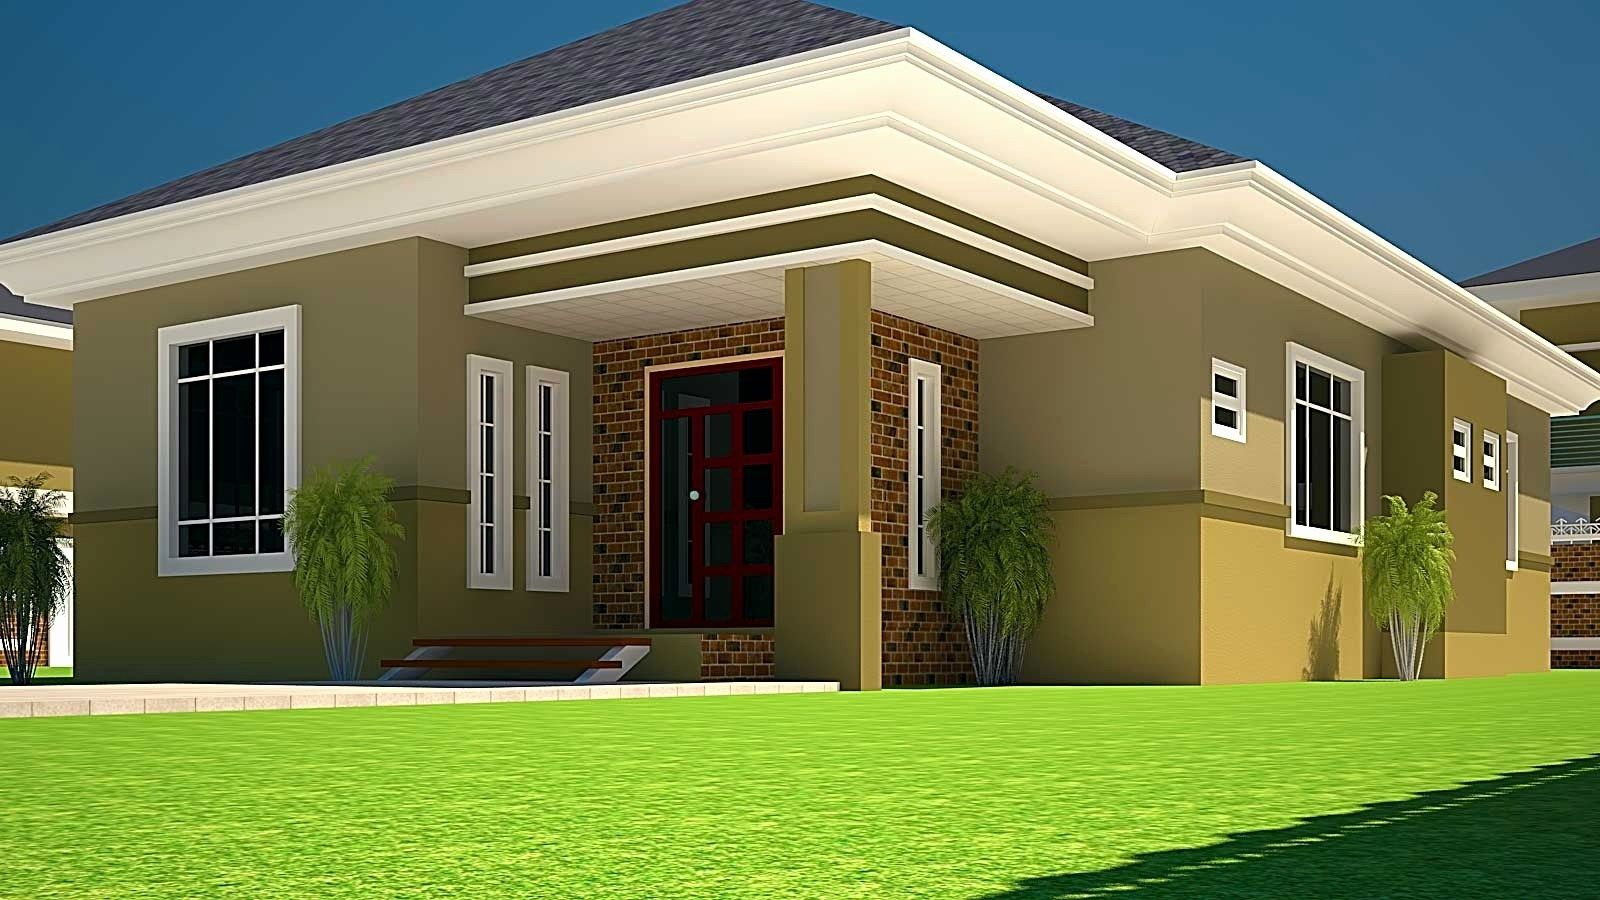 Frantic Single Story House Facades Google Search Bedroom House Plansqueensland Urgent Help Nee House Design Pictures Bungalow House Design Bungalow House Plans